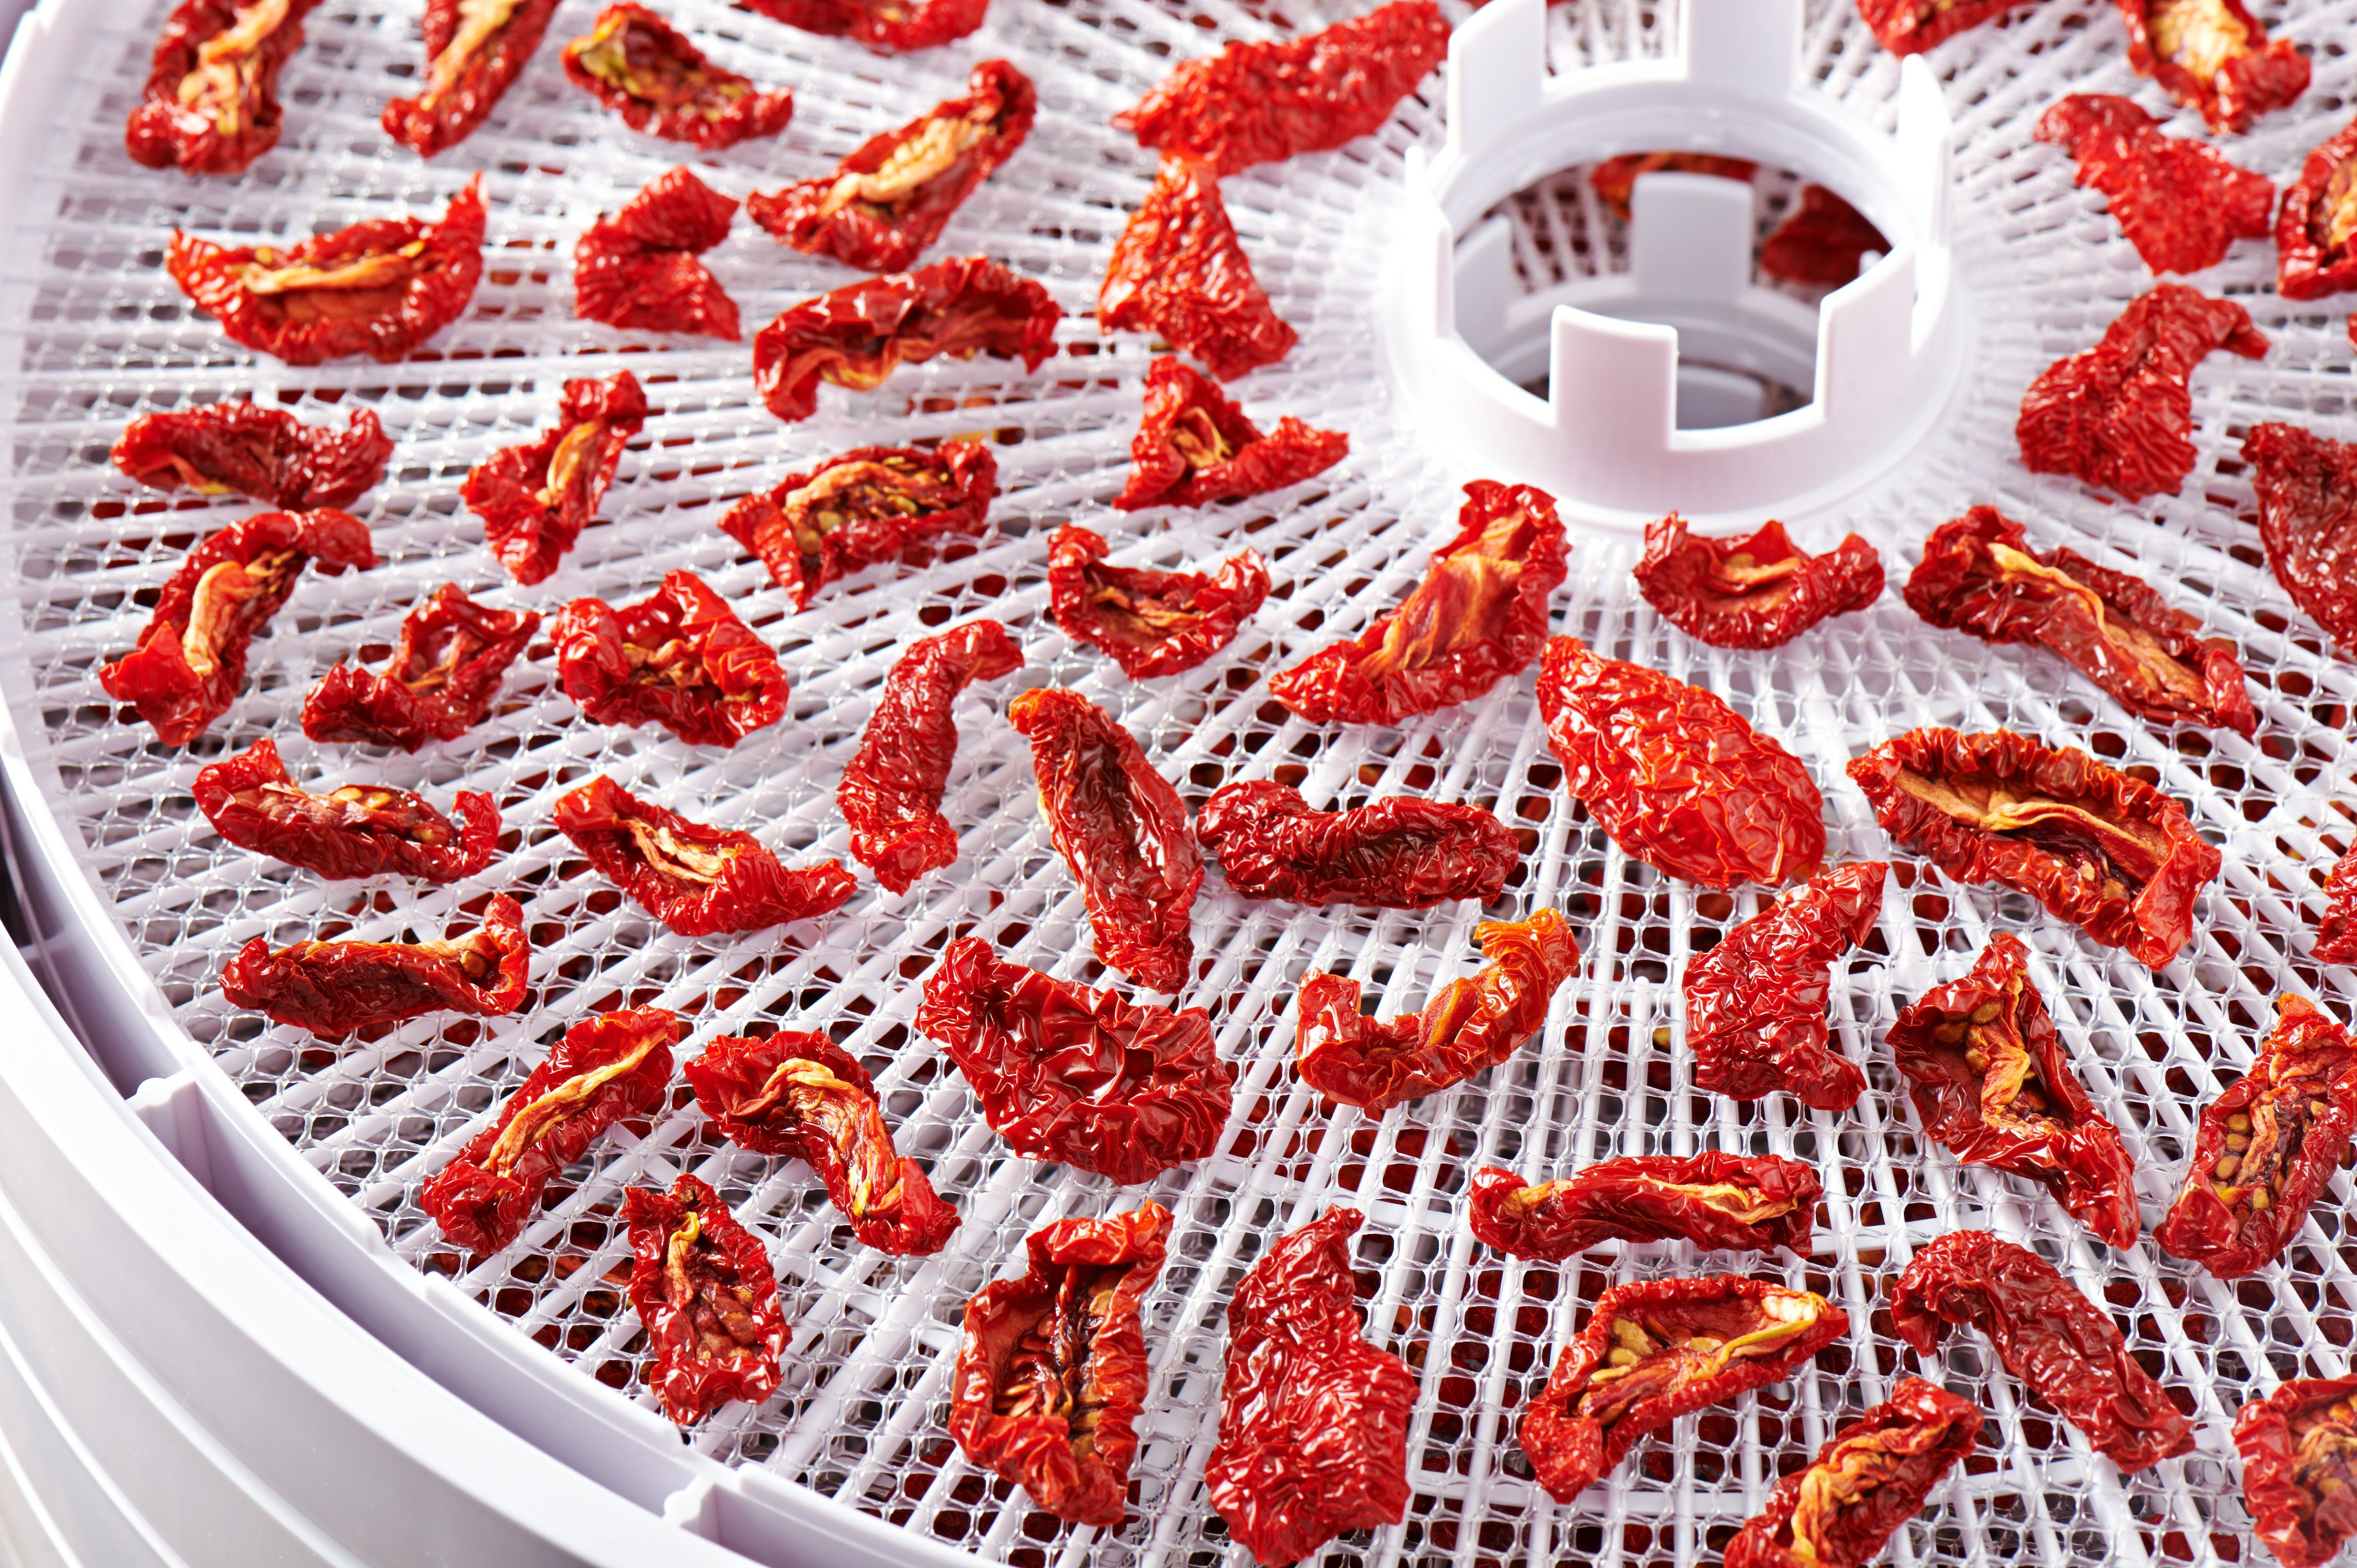 Ronco Food Dehydrator Instructions